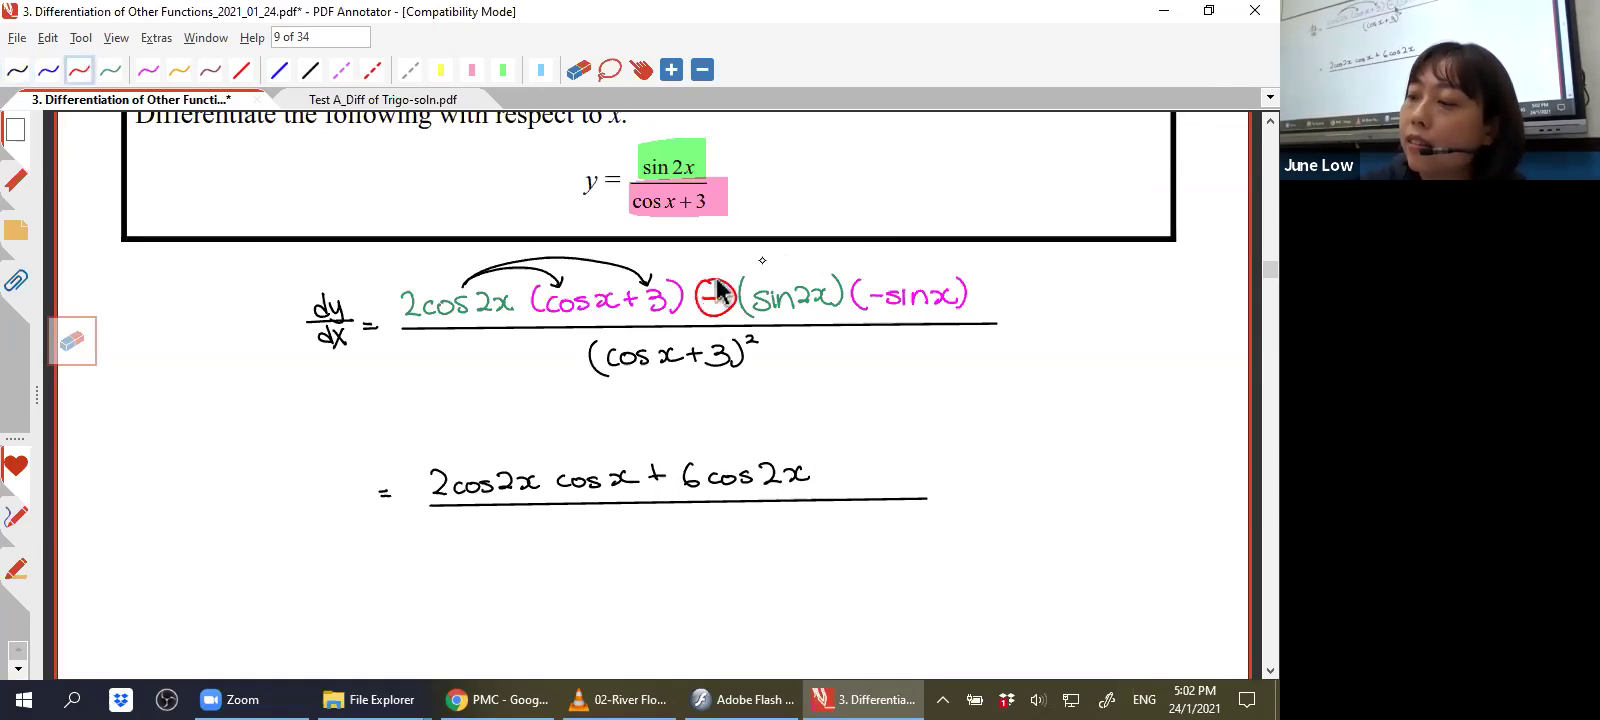 [DIFFERENTIATION OF OTHER FUNCTIONS] Trigonometric Functions